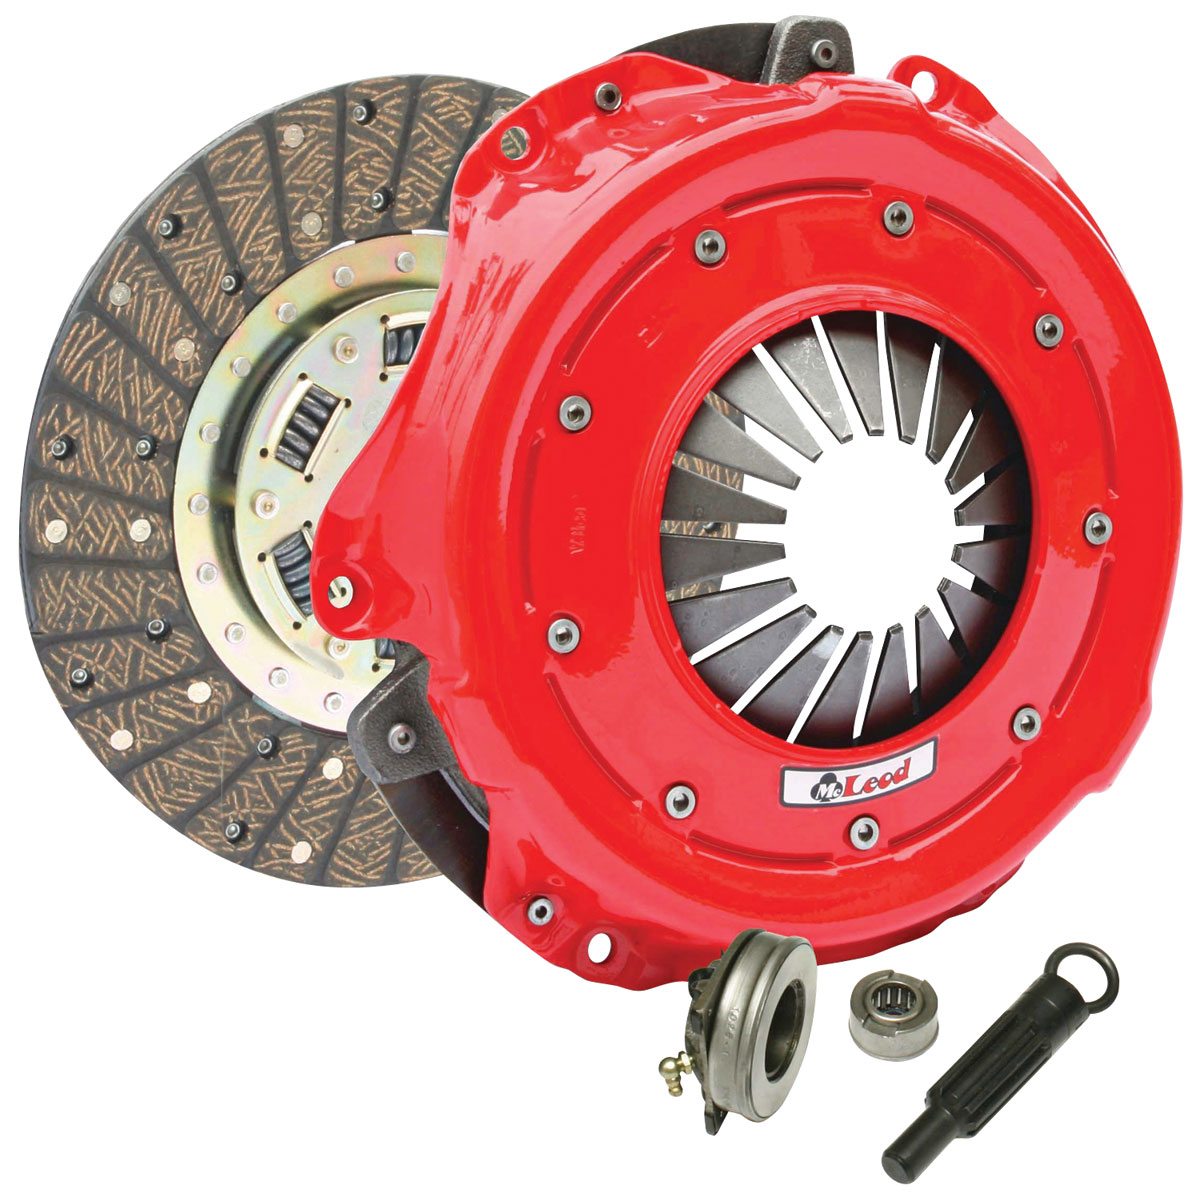 "Photo of Clutch Kits, McLeod Street Level 11"", 26-spline"